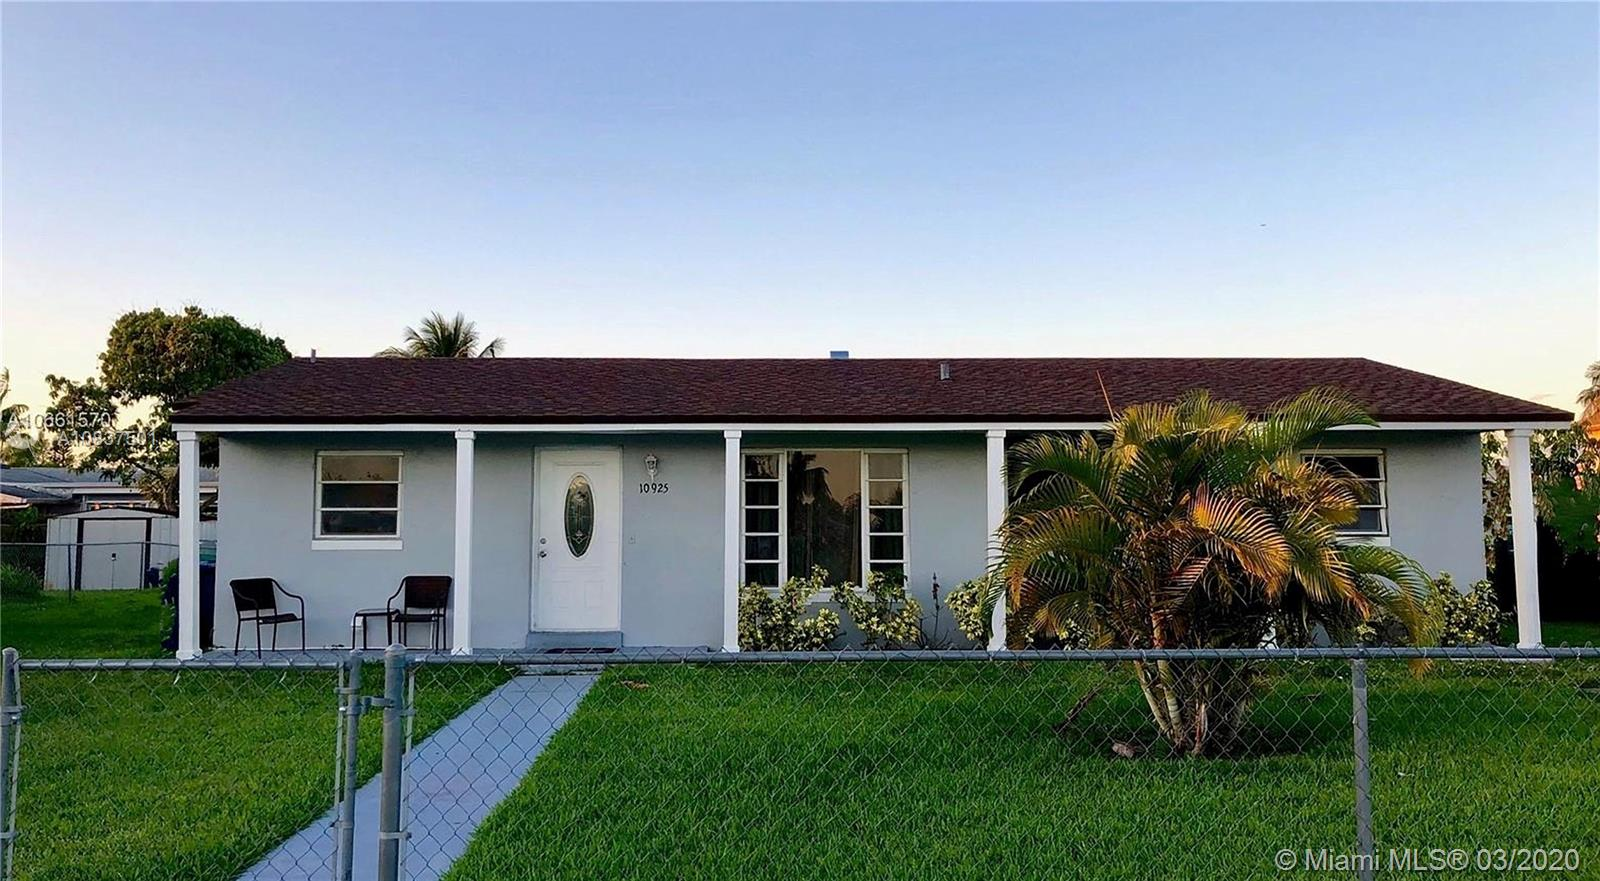 10925 SW 142nd Ln, Miami, Florida 33176, 4 Bedrooms Bedrooms, ,2 BathroomsBathrooms,Residential,For Sale,10925 SW 142nd Ln,A10837501